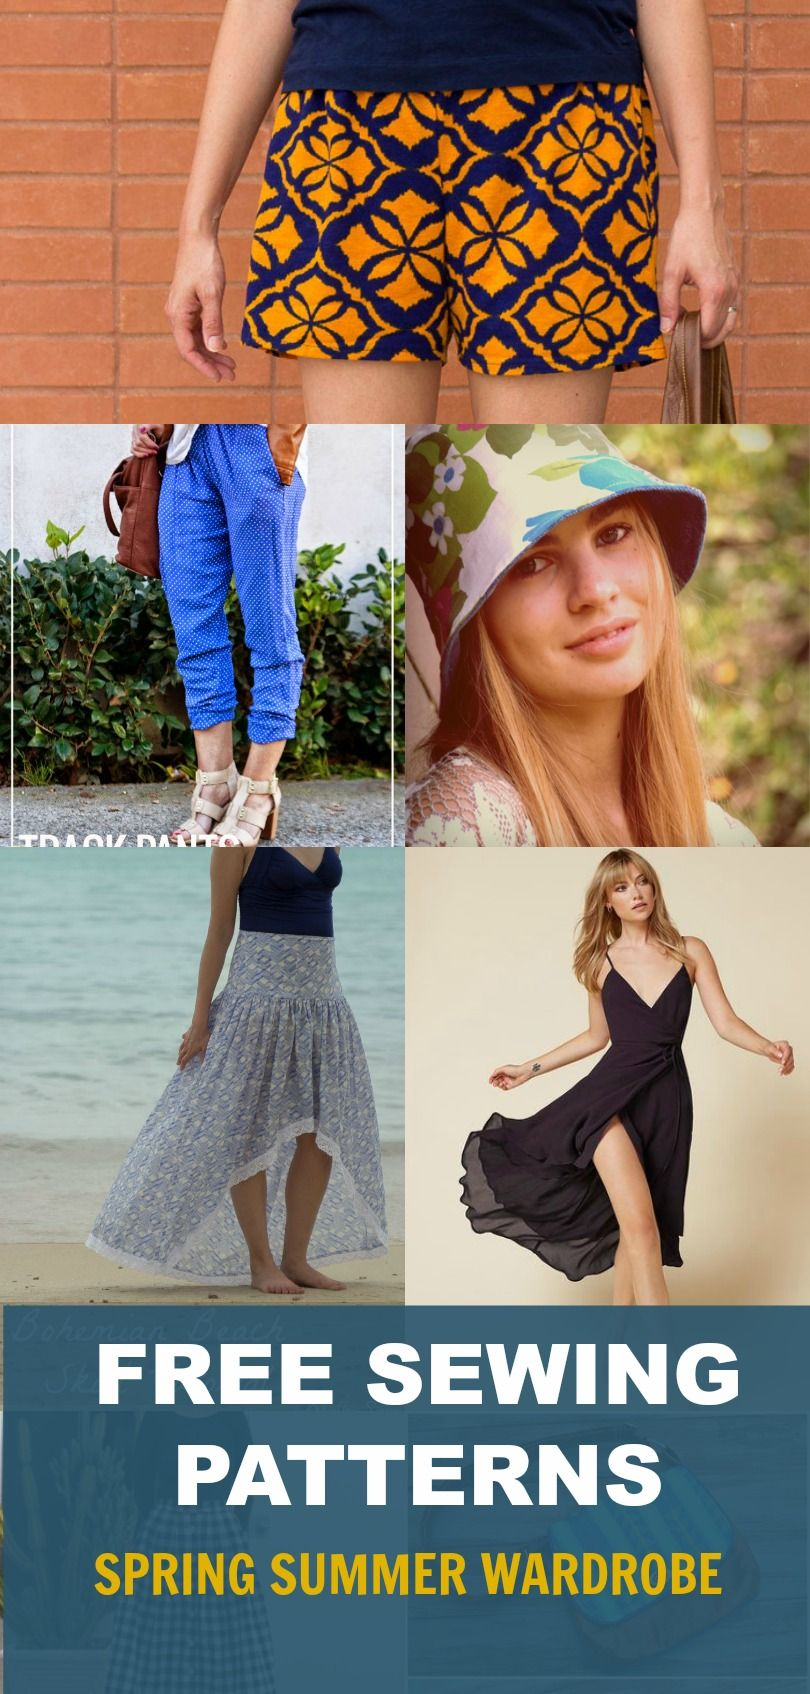 Free sewing patterns: Spring wardrobe for women | On the Cutting Floor: Printable pdf sewing patterns and tutorials for women